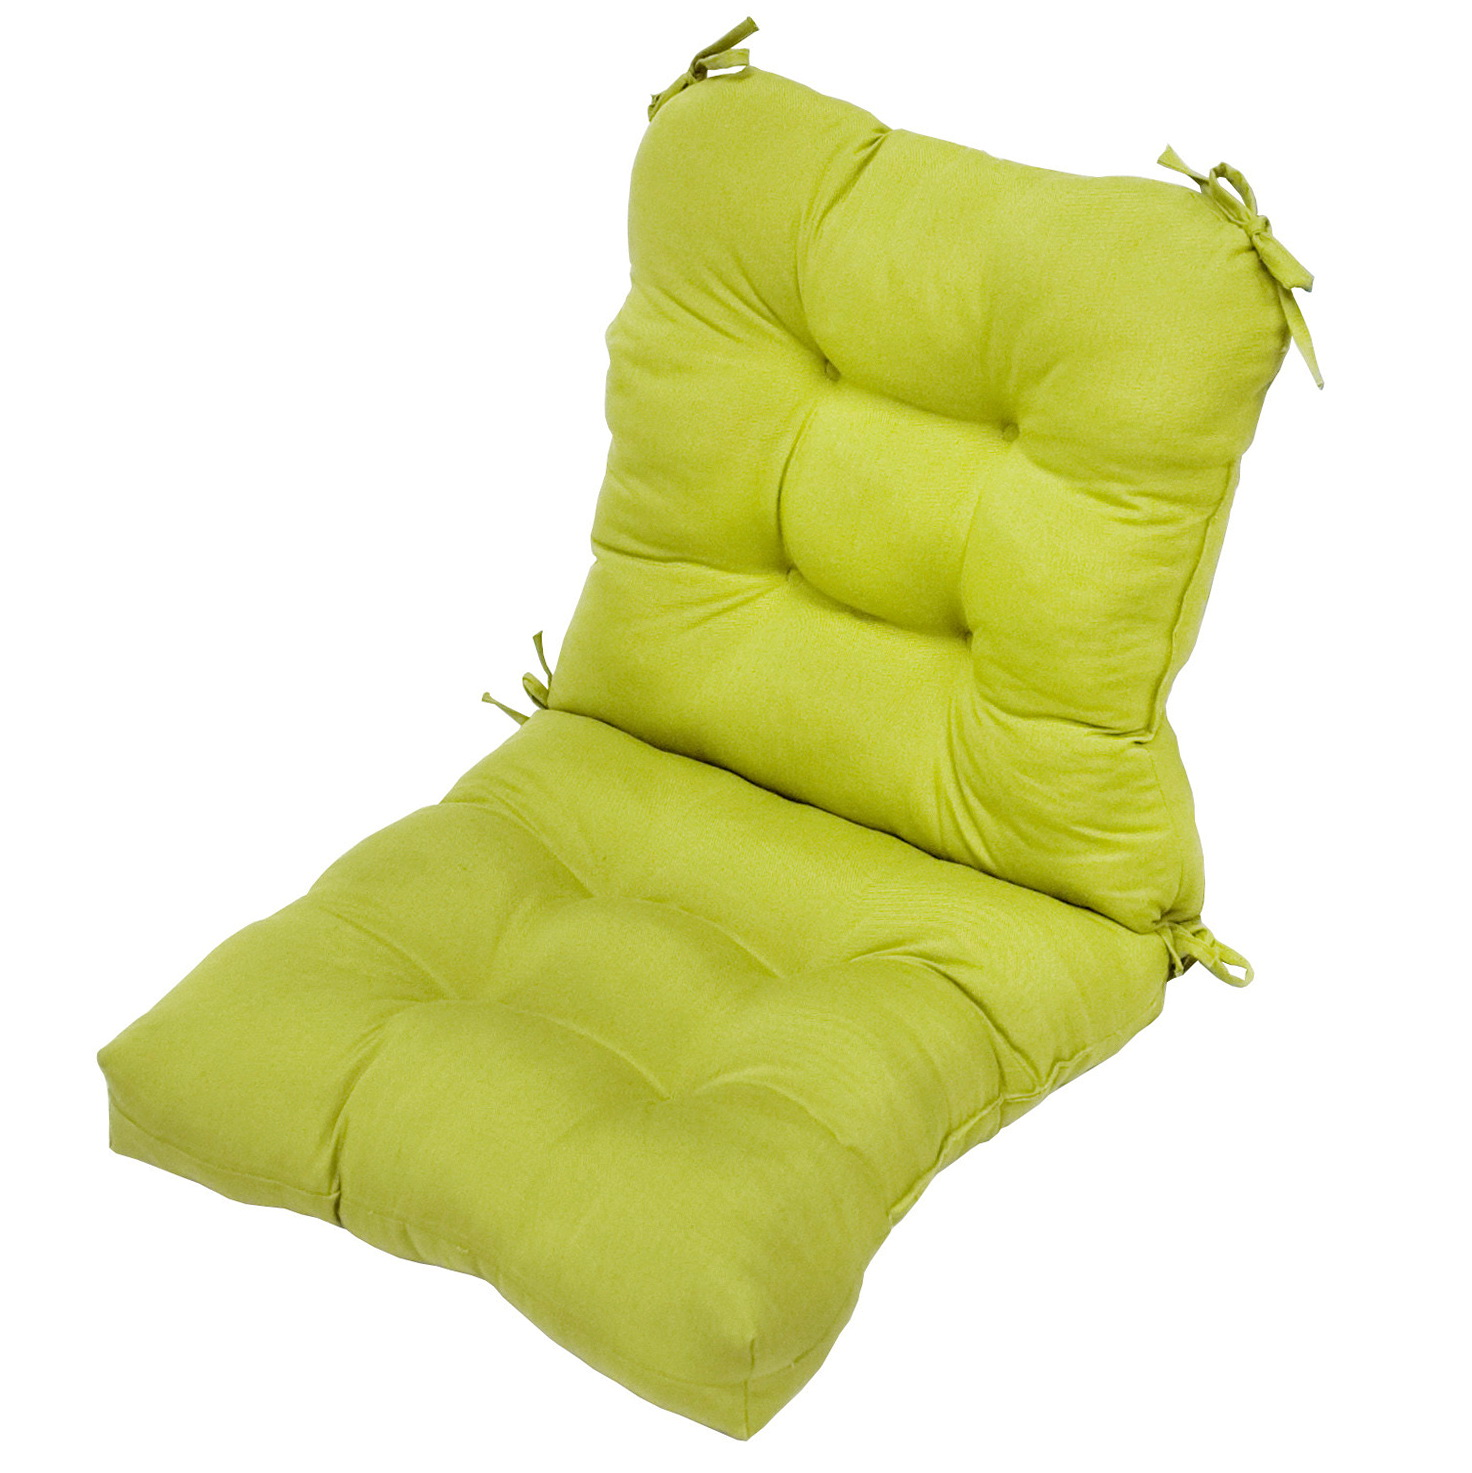 Outside Chair Cushions On Sale